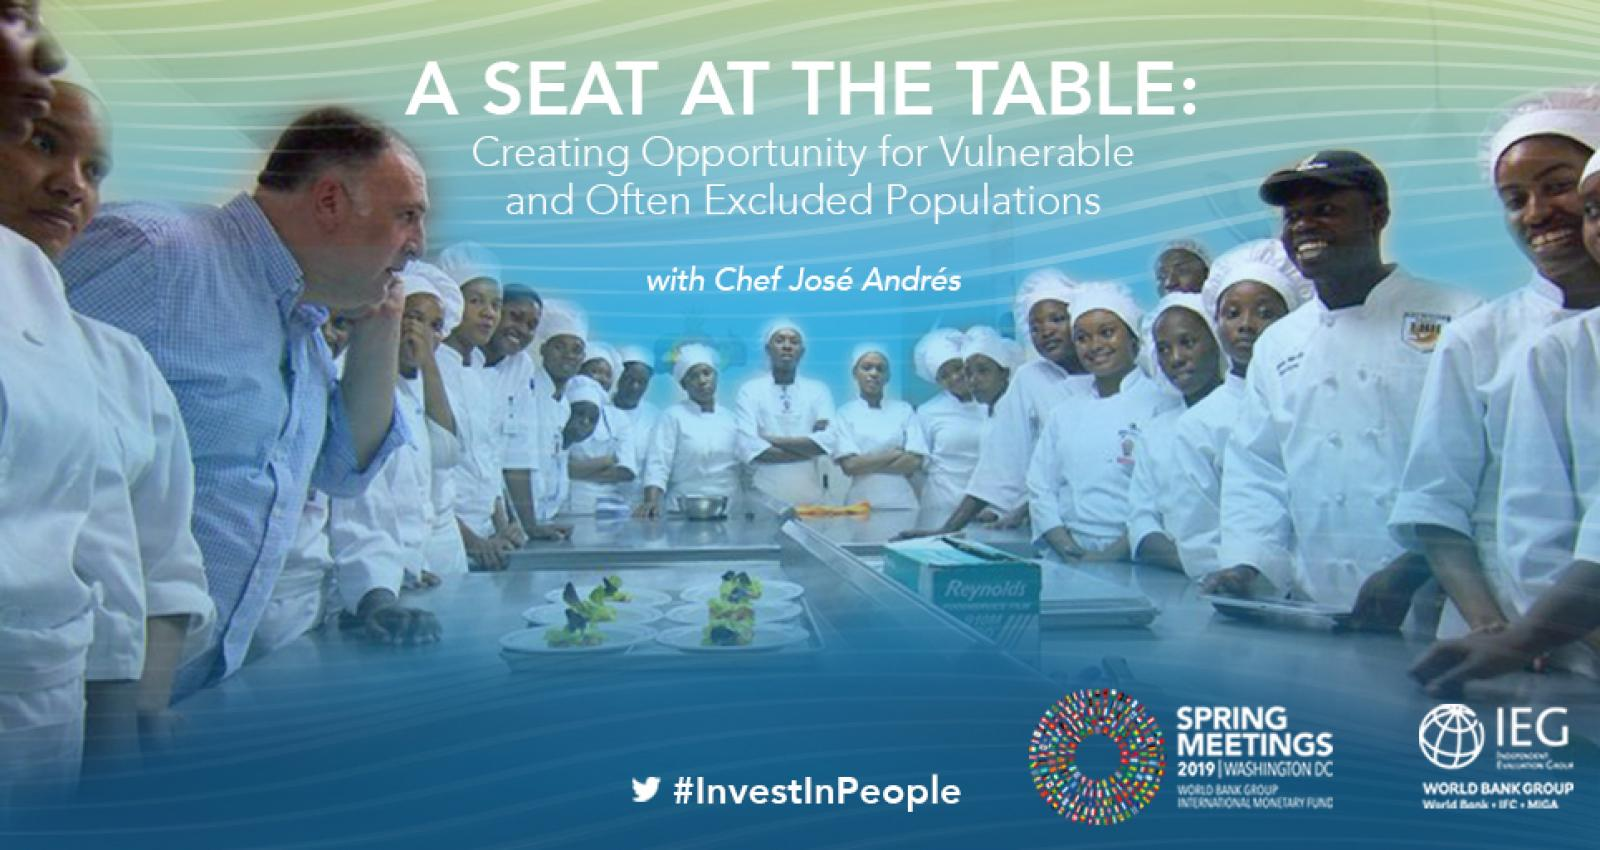 A Seat at the Table: Creating Opportunity for Vulnerable and Often Excluded Populations with Chef José Andrés